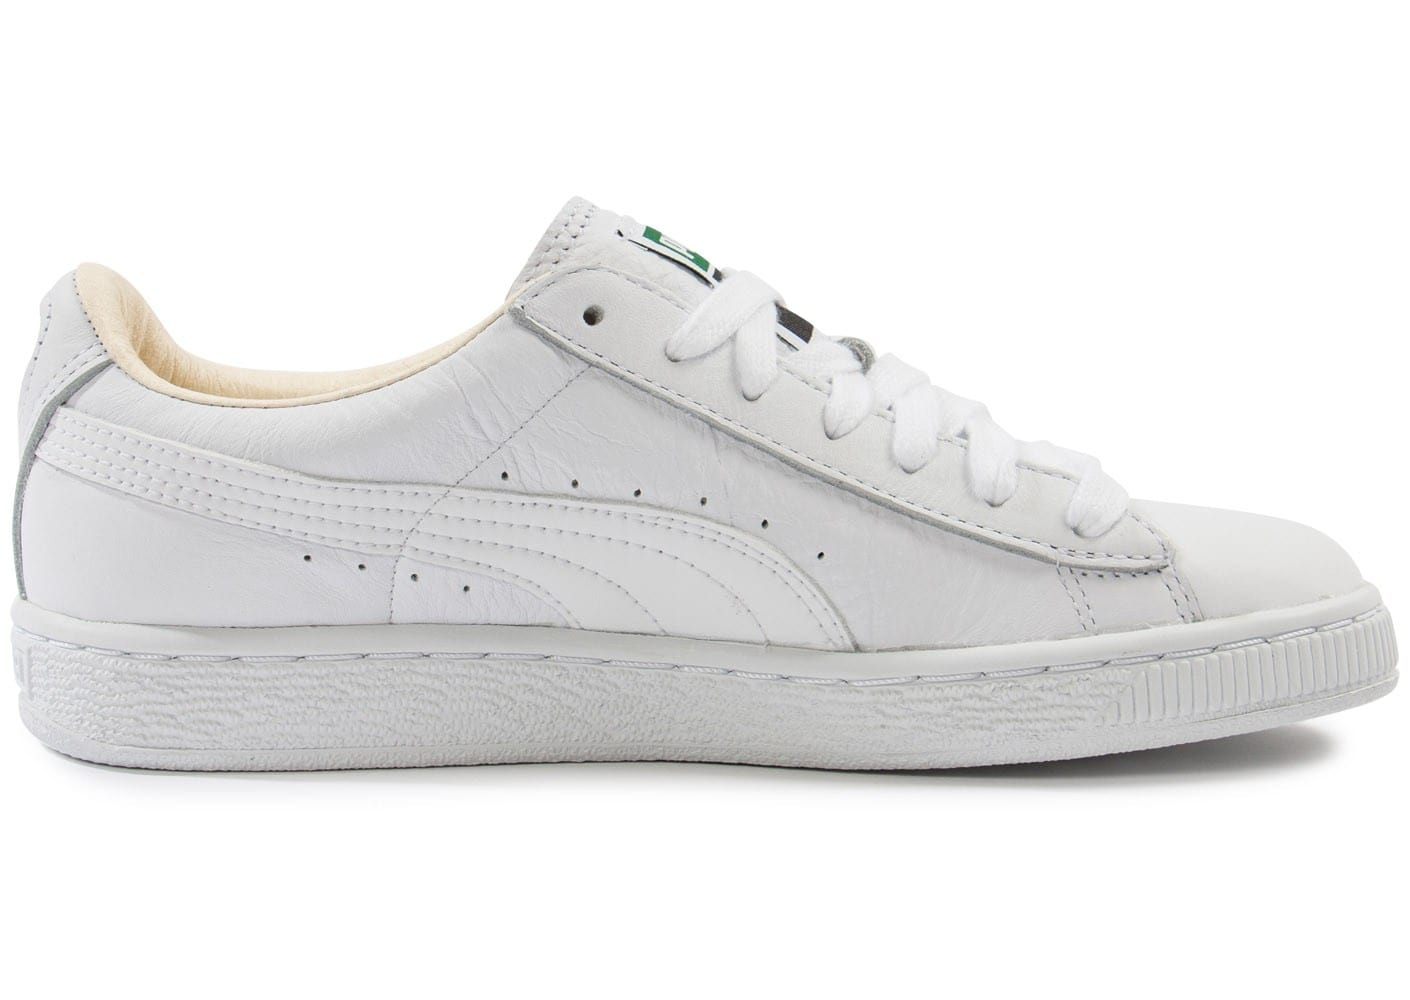 ae3178f8567 Chaussures Puma Classic blanches Casual homme bL7i2R - reactivate ...